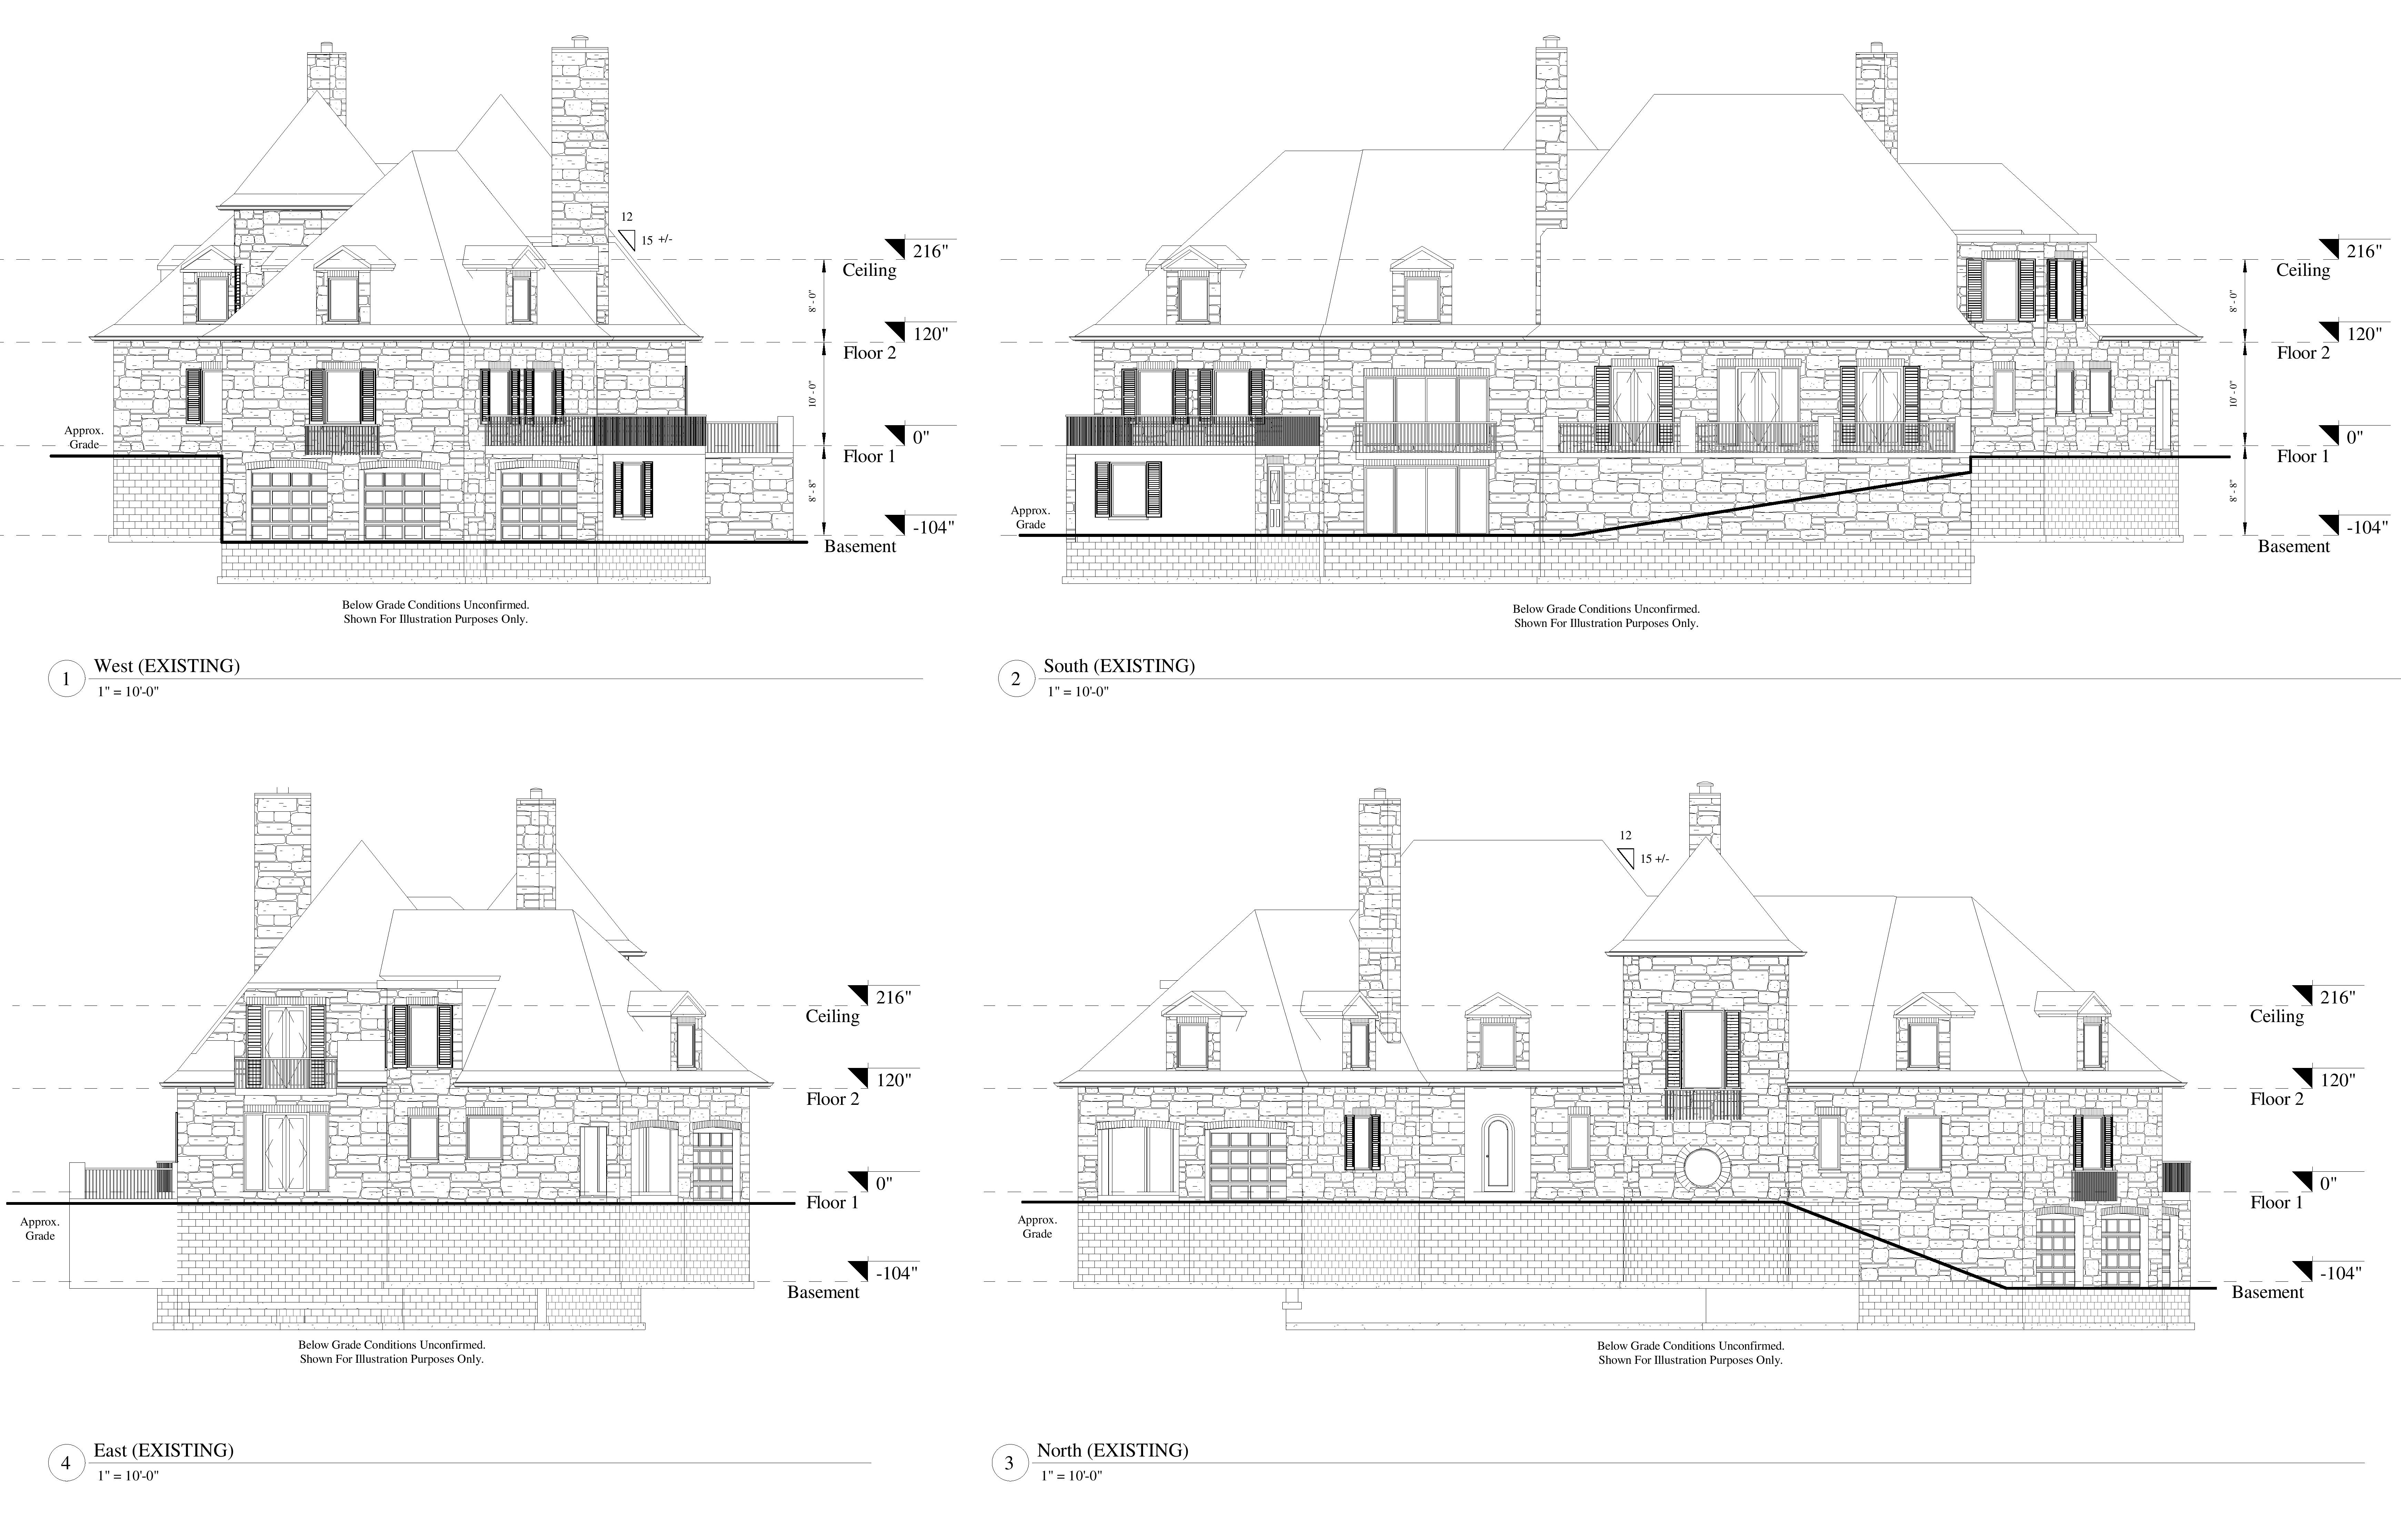 AutoCad drawings of 2D elevations for a two level residential house including the basement from the north, south, east and west viewpoints.